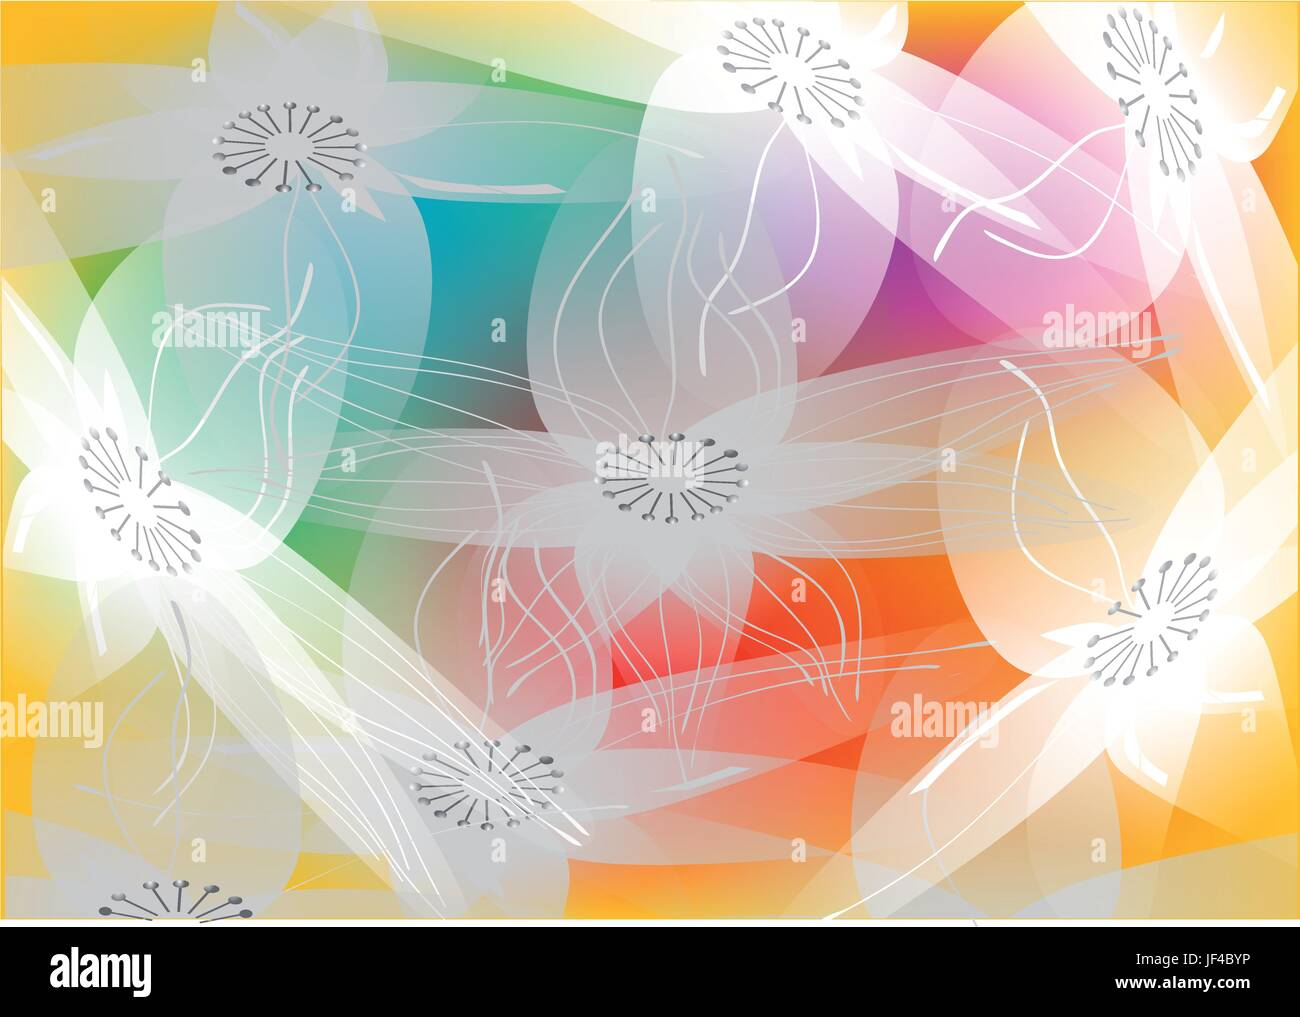 flower, plant, summer, summerly, illustration, shape, ornate, decoration, - Stock Vector